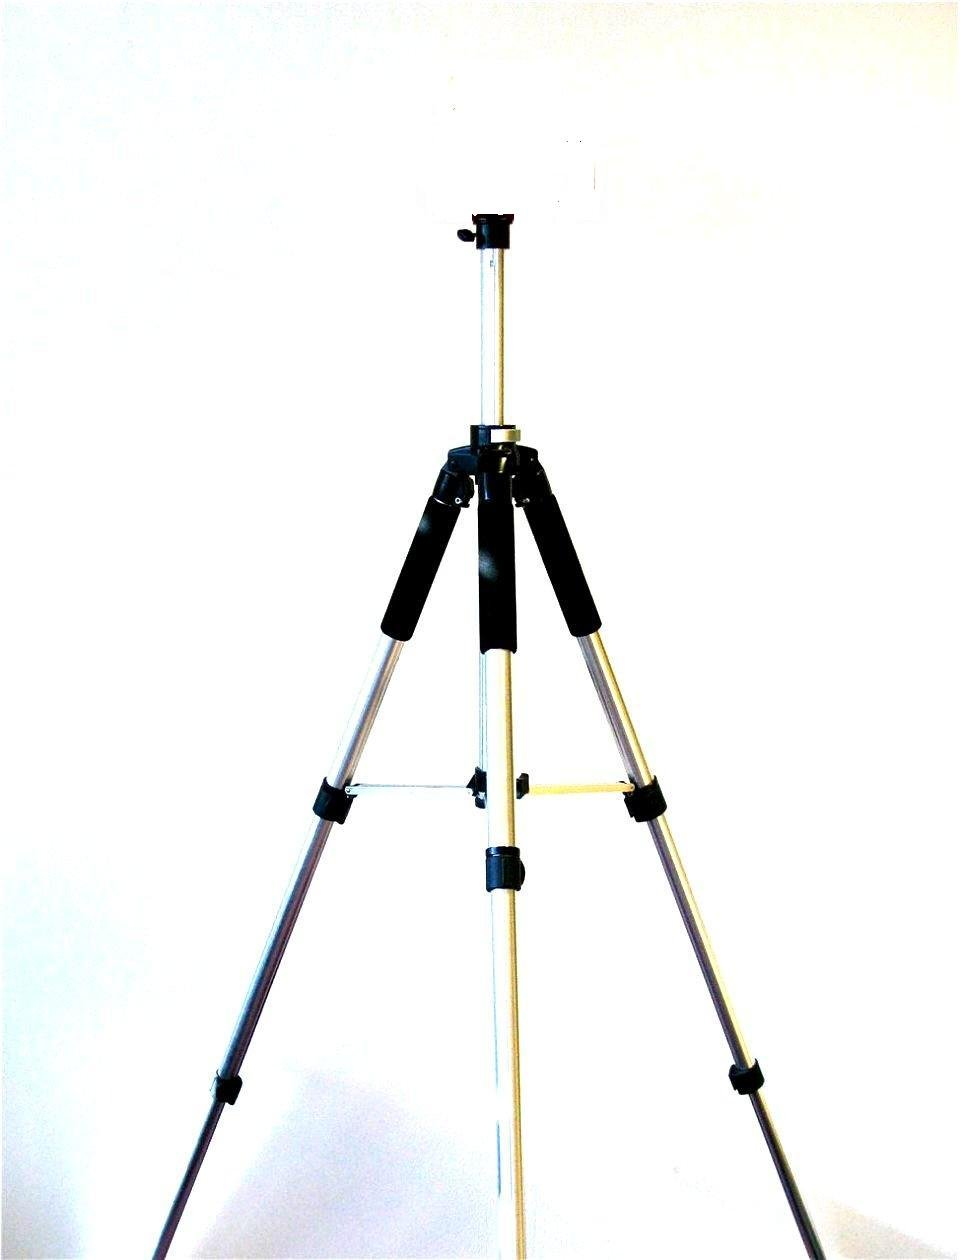 Pacific Laser Systems PLS Elevator Tripod with Adjustable Height to 9-Foot 6-Inch by Pacific Laser Systems B001XURC0C